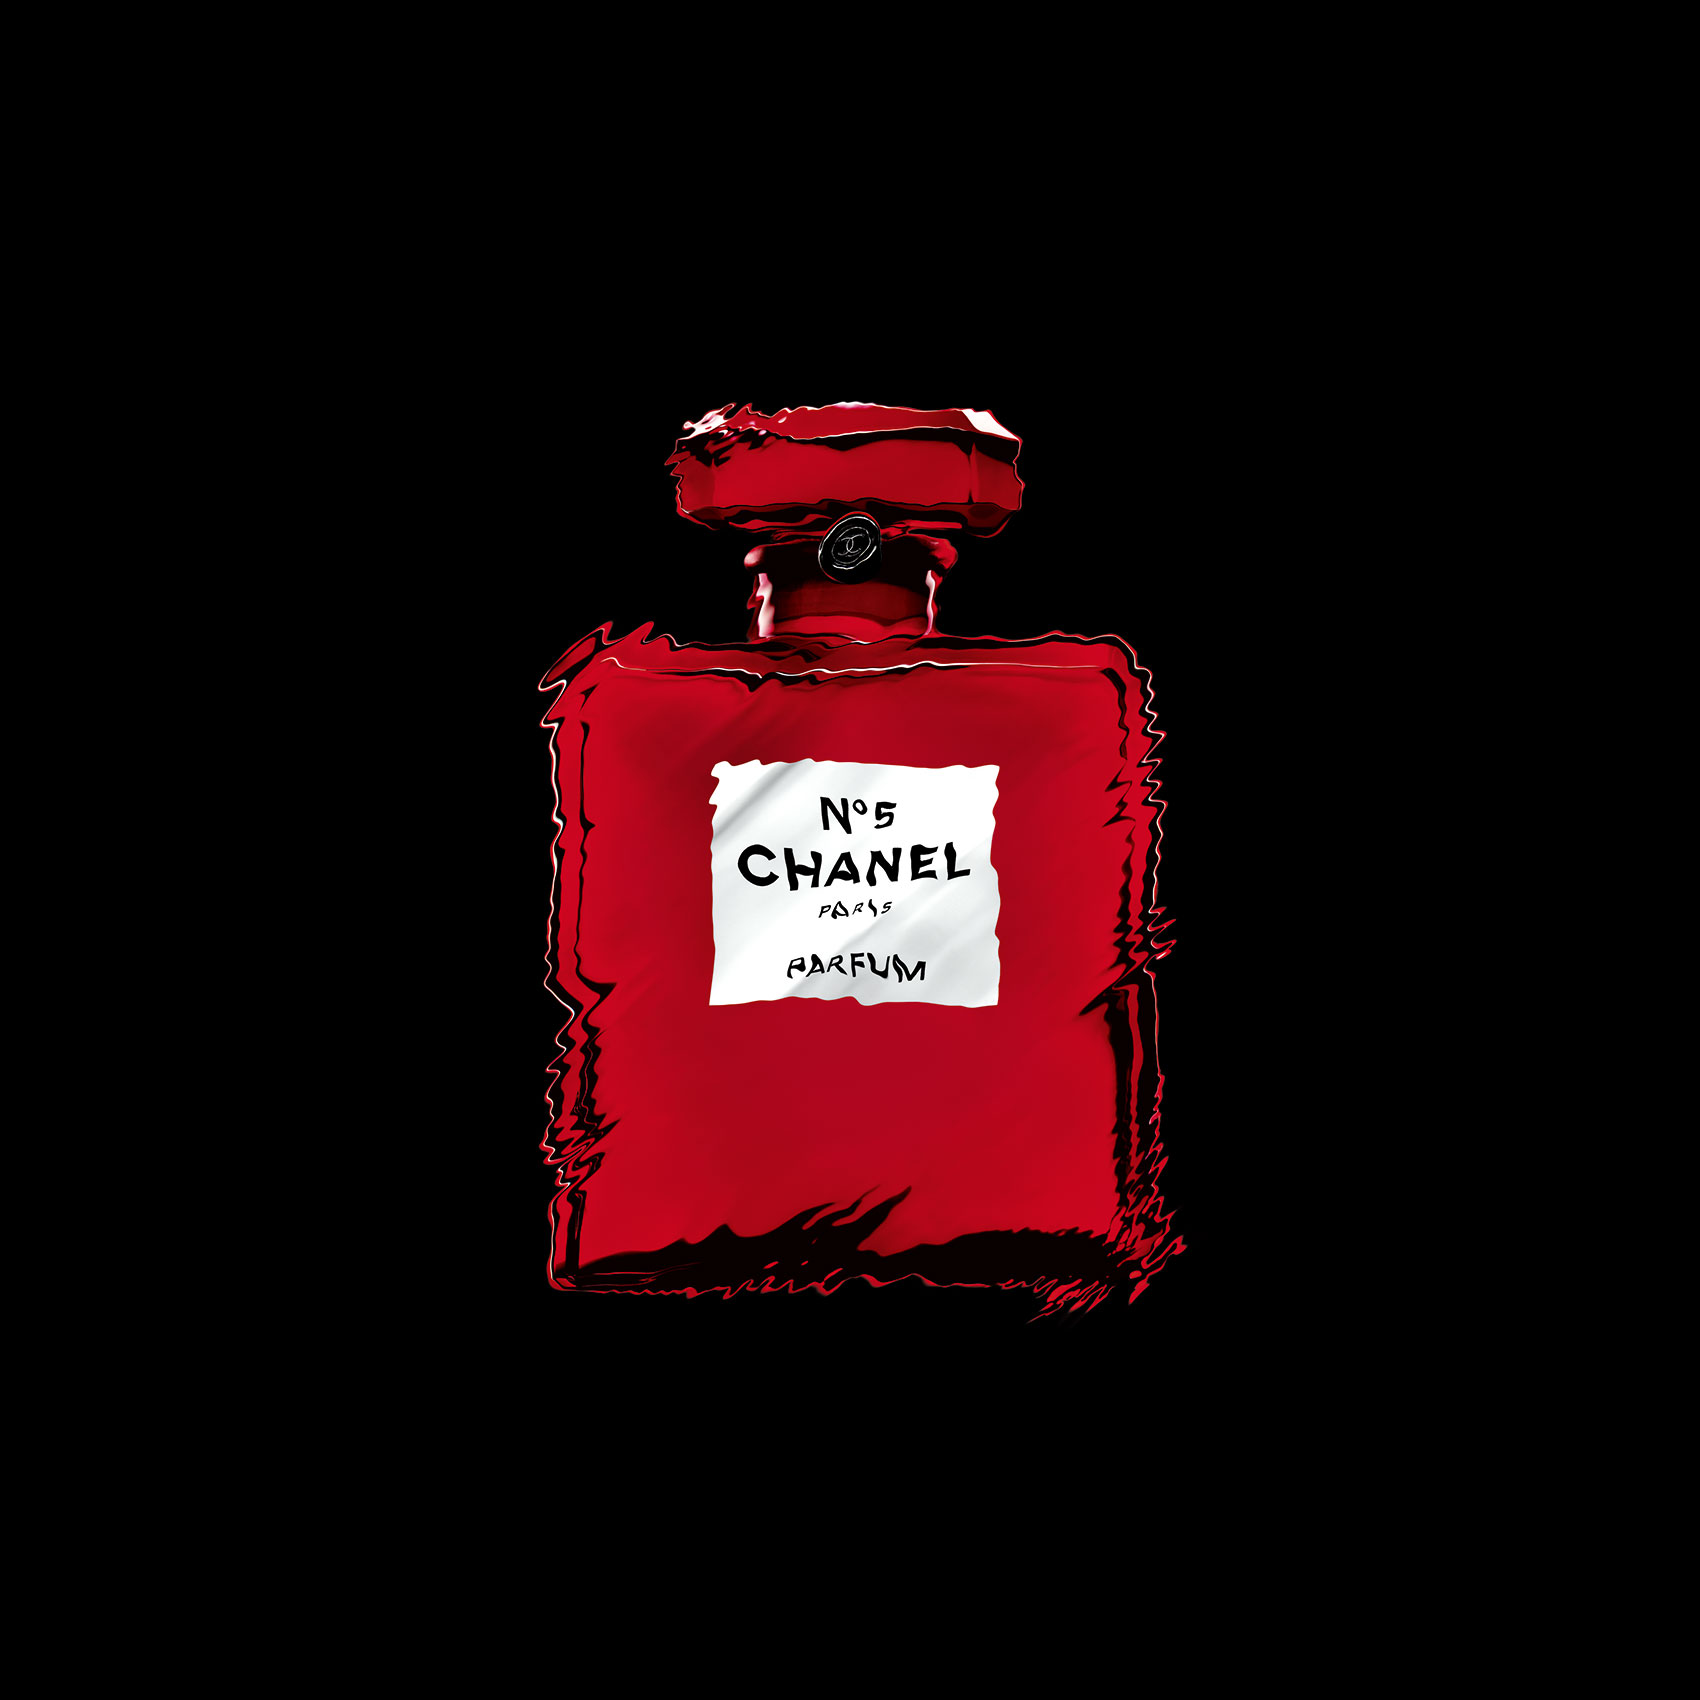 chanel 5号香水_Chanel No 5 Parfum Red Edition Chanel 香水 - 一款 2018年 新的 女用 香水